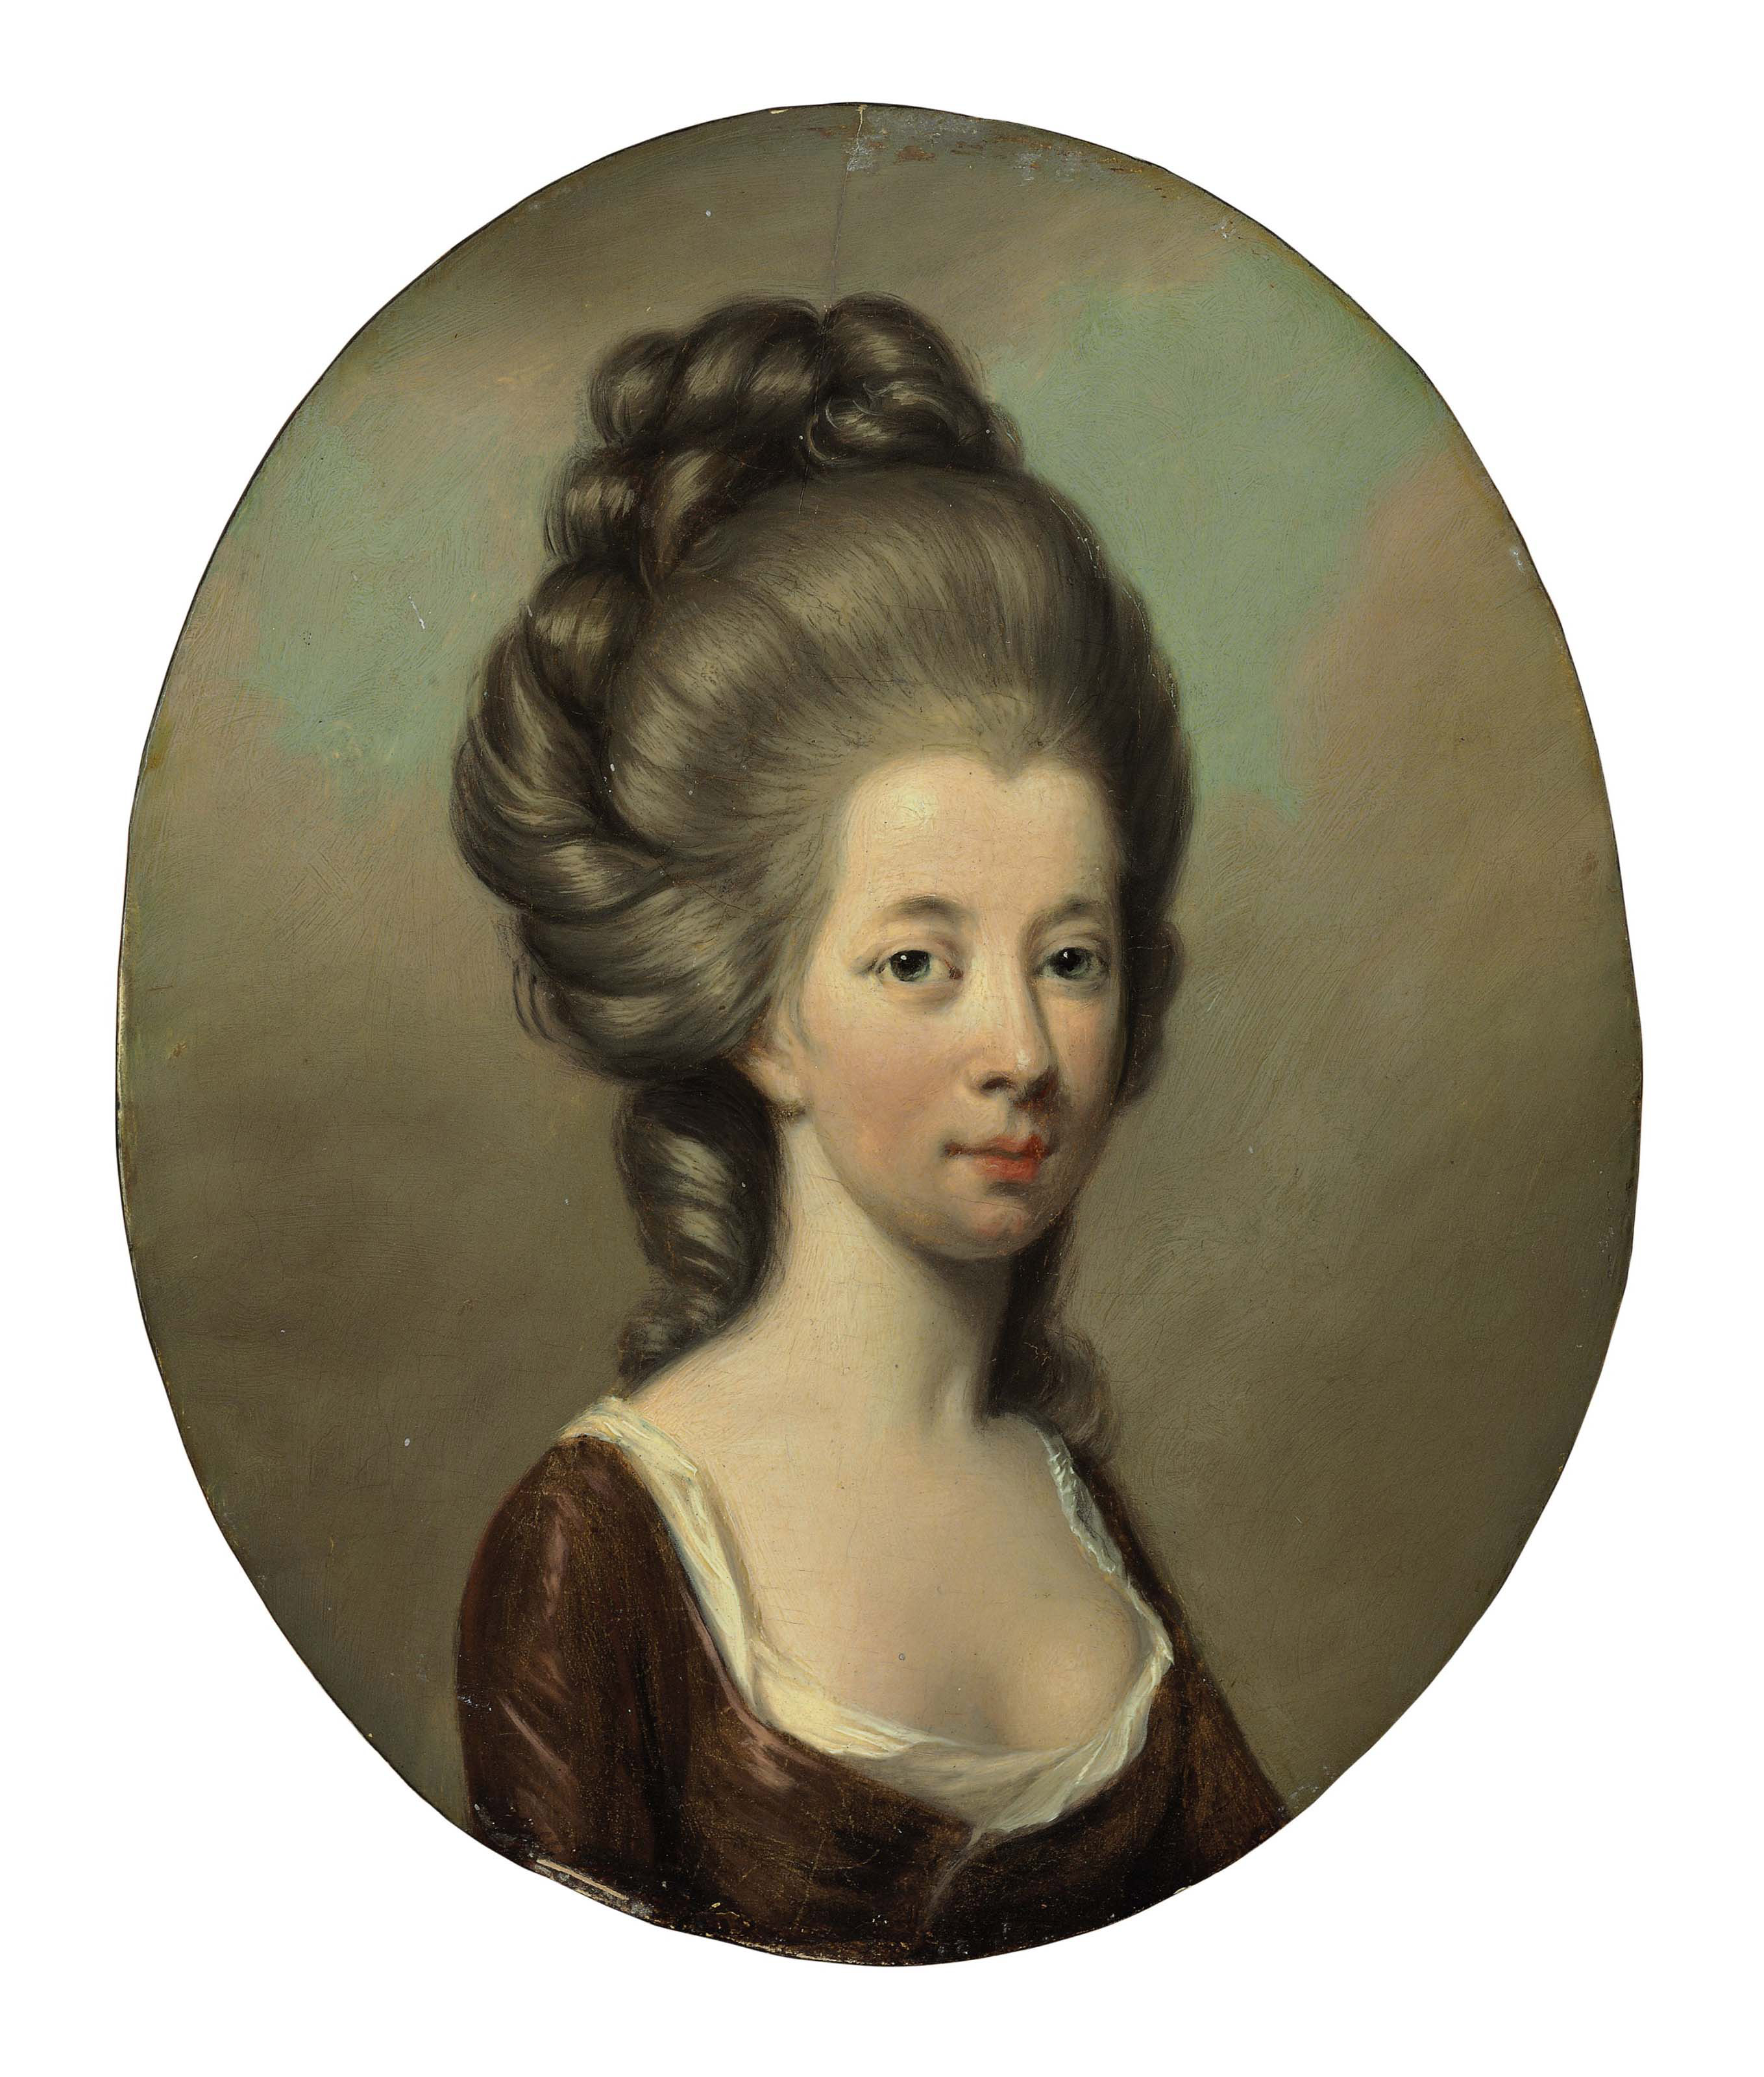 Portrait of Emilia Olivia St. George, the Duchess of Leinster, bust- length